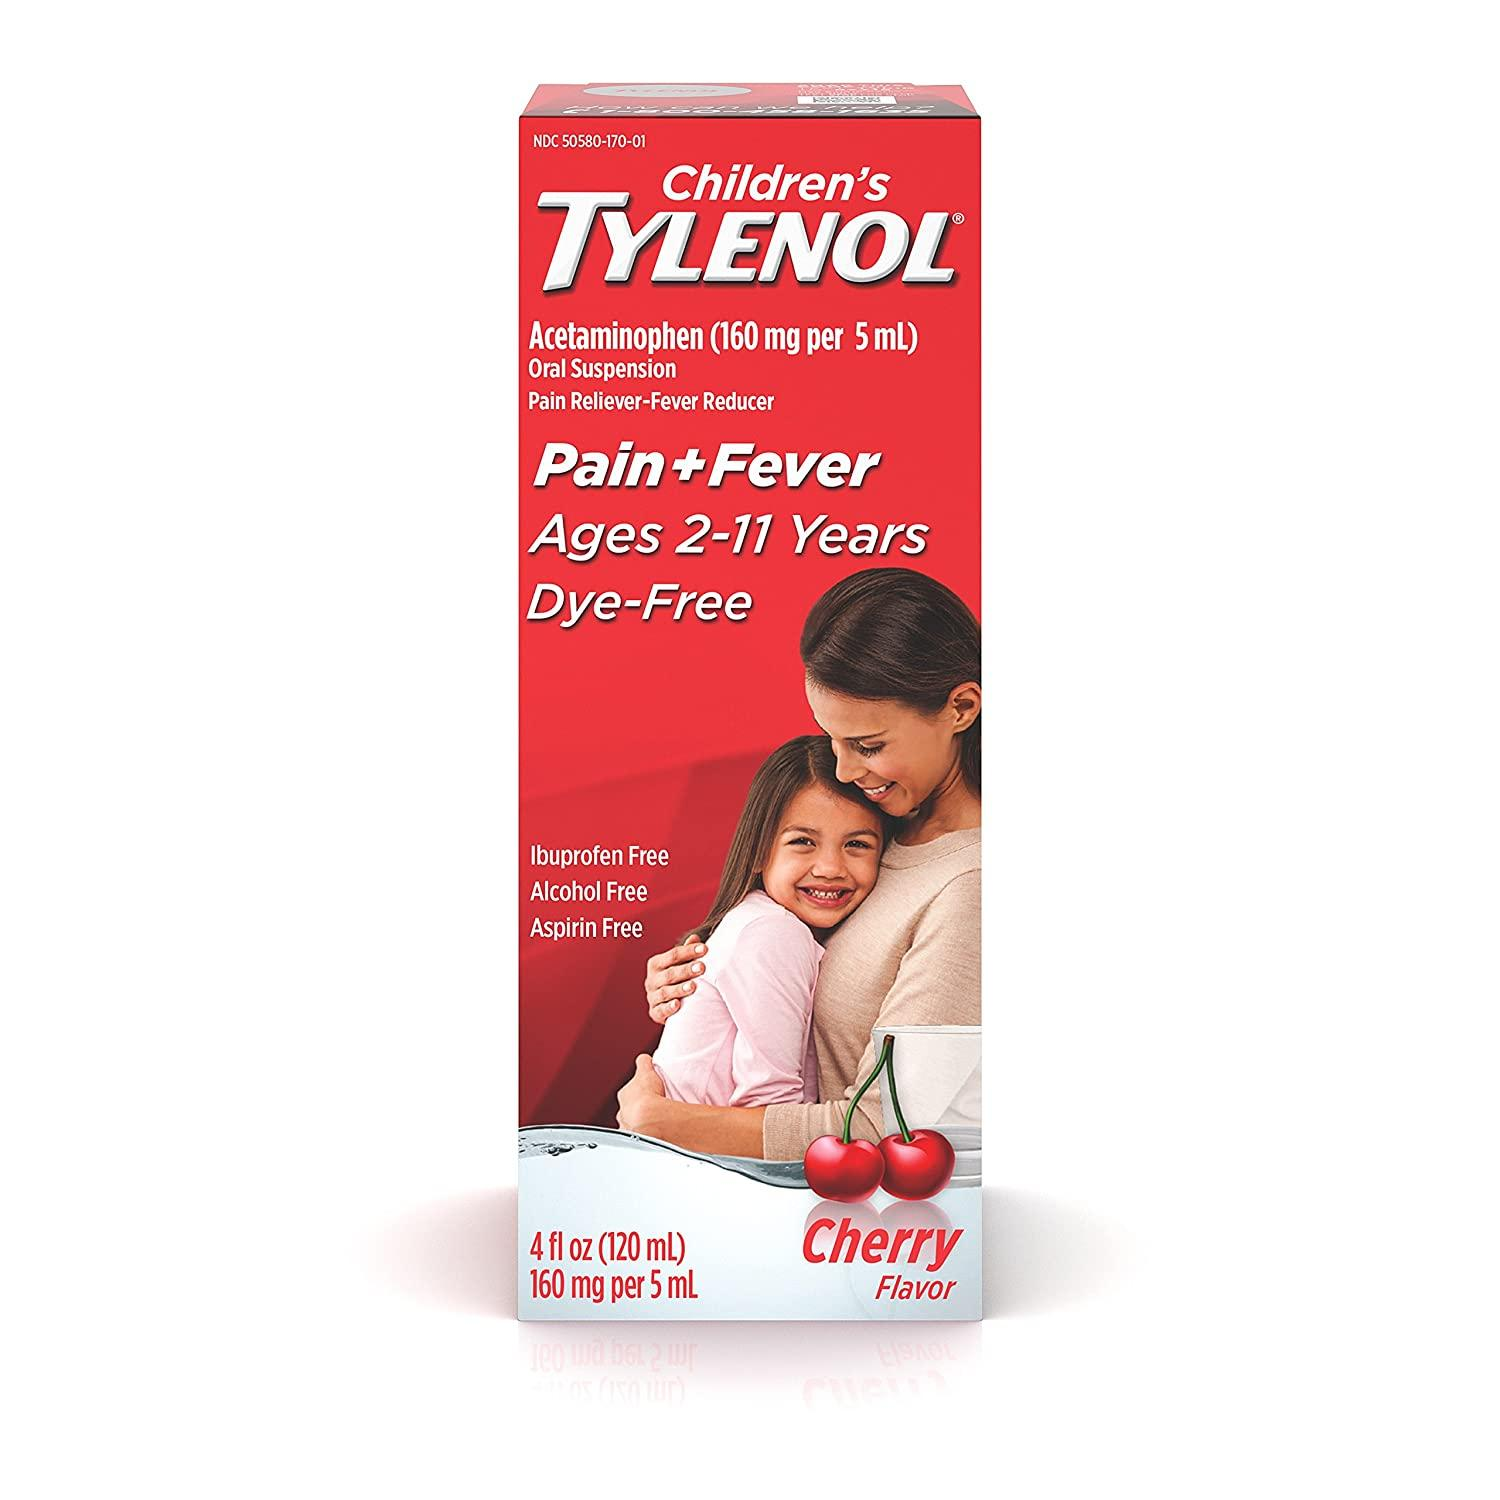 Children's Tylenol Oral Suspension Acetaminophen Medicine, Dye-Free Cherry, 4 fl. oz